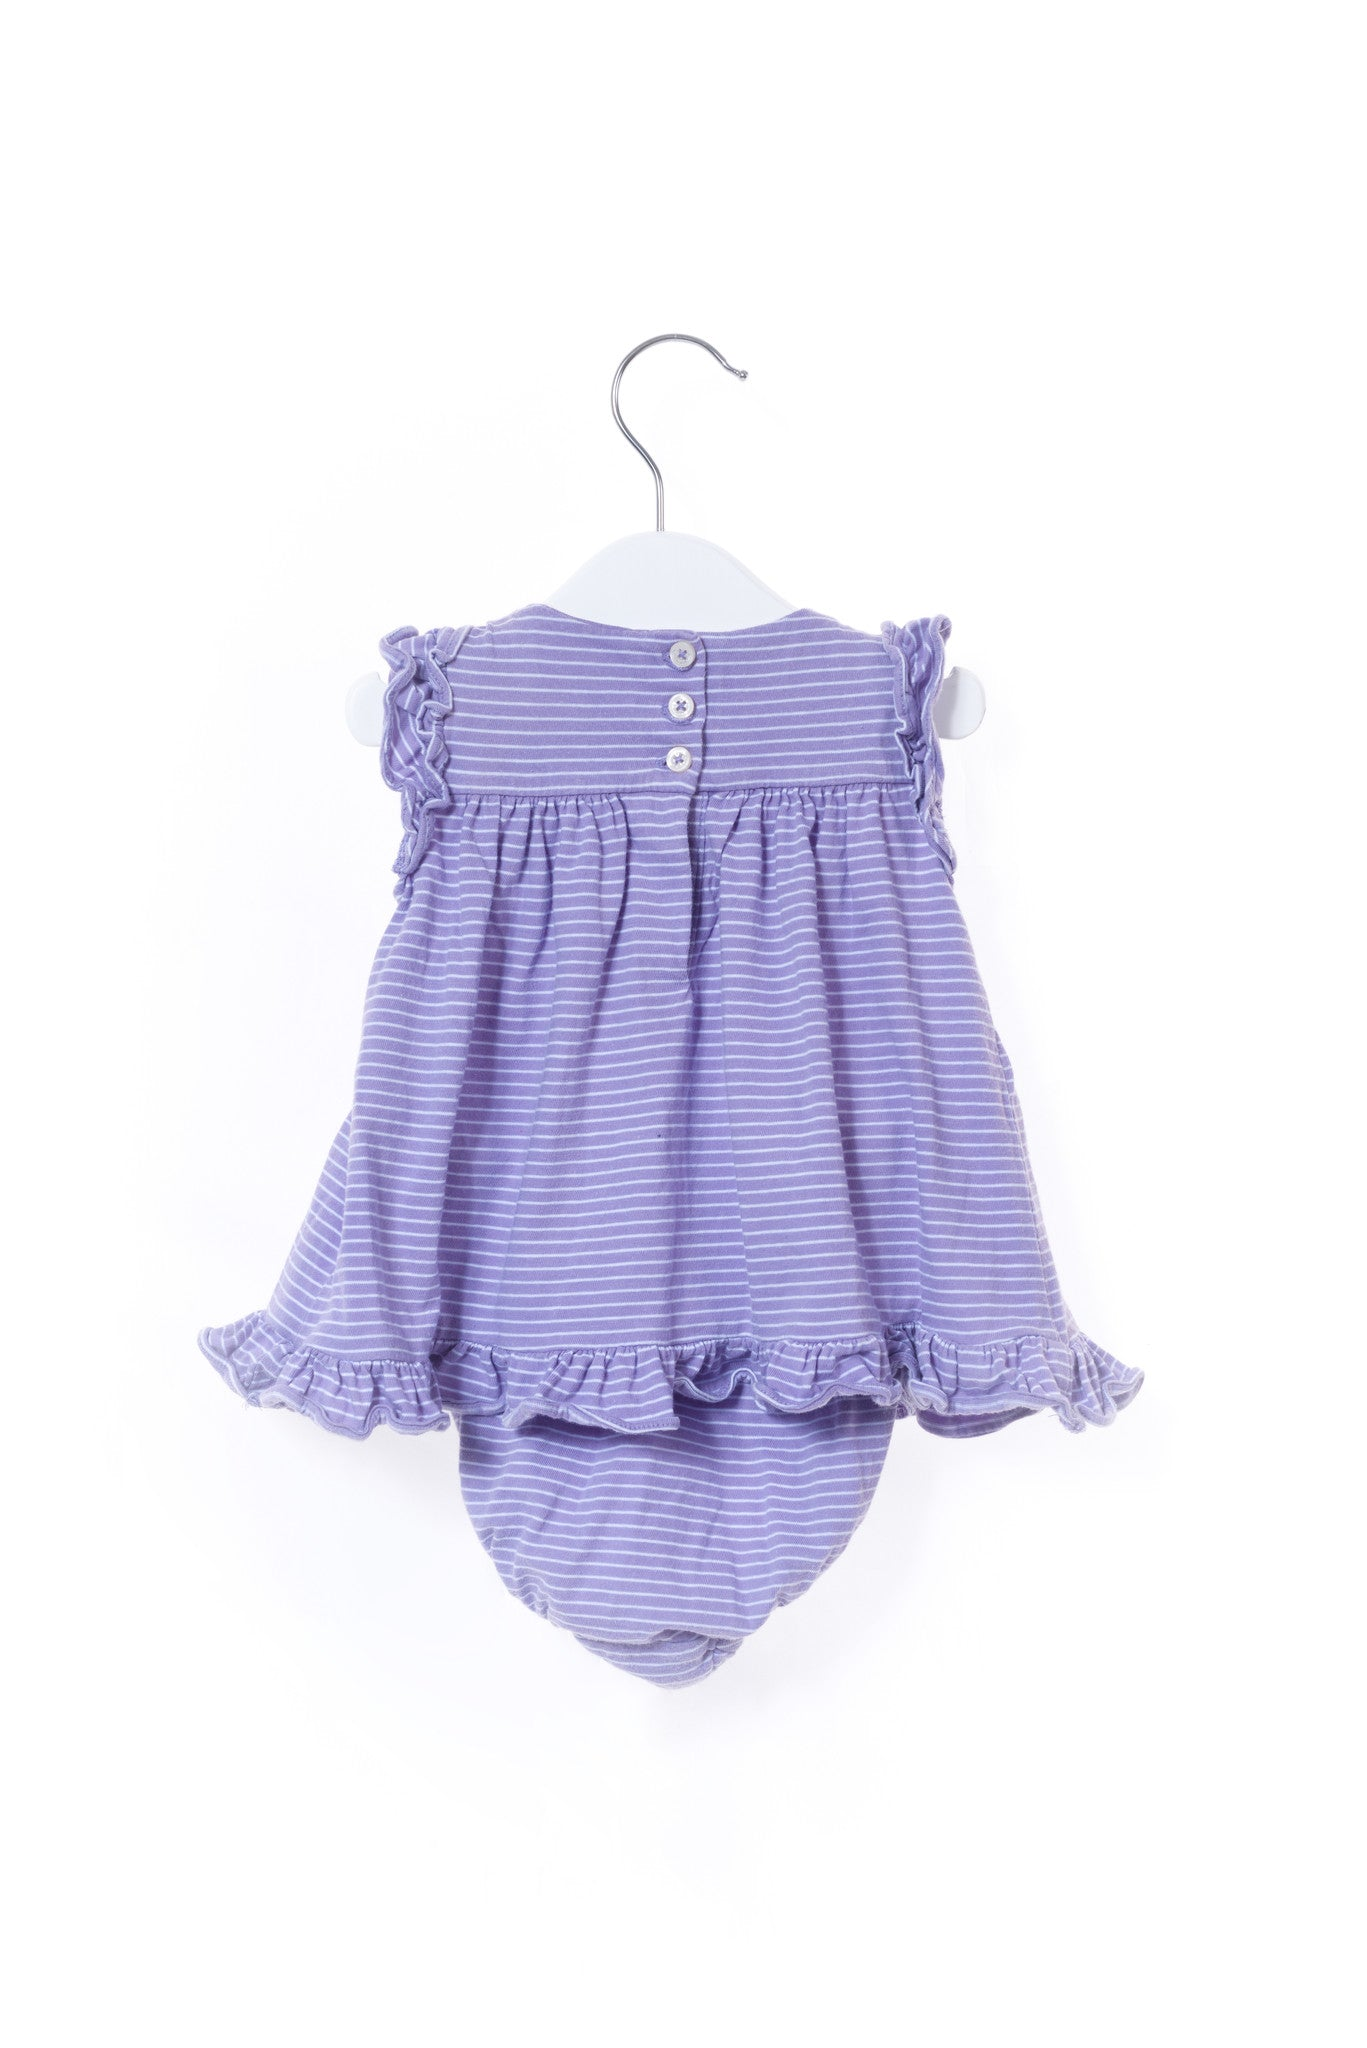 10001004 Ralph Lauren Baby~Dress and Bloomer 0-3M at Retykle